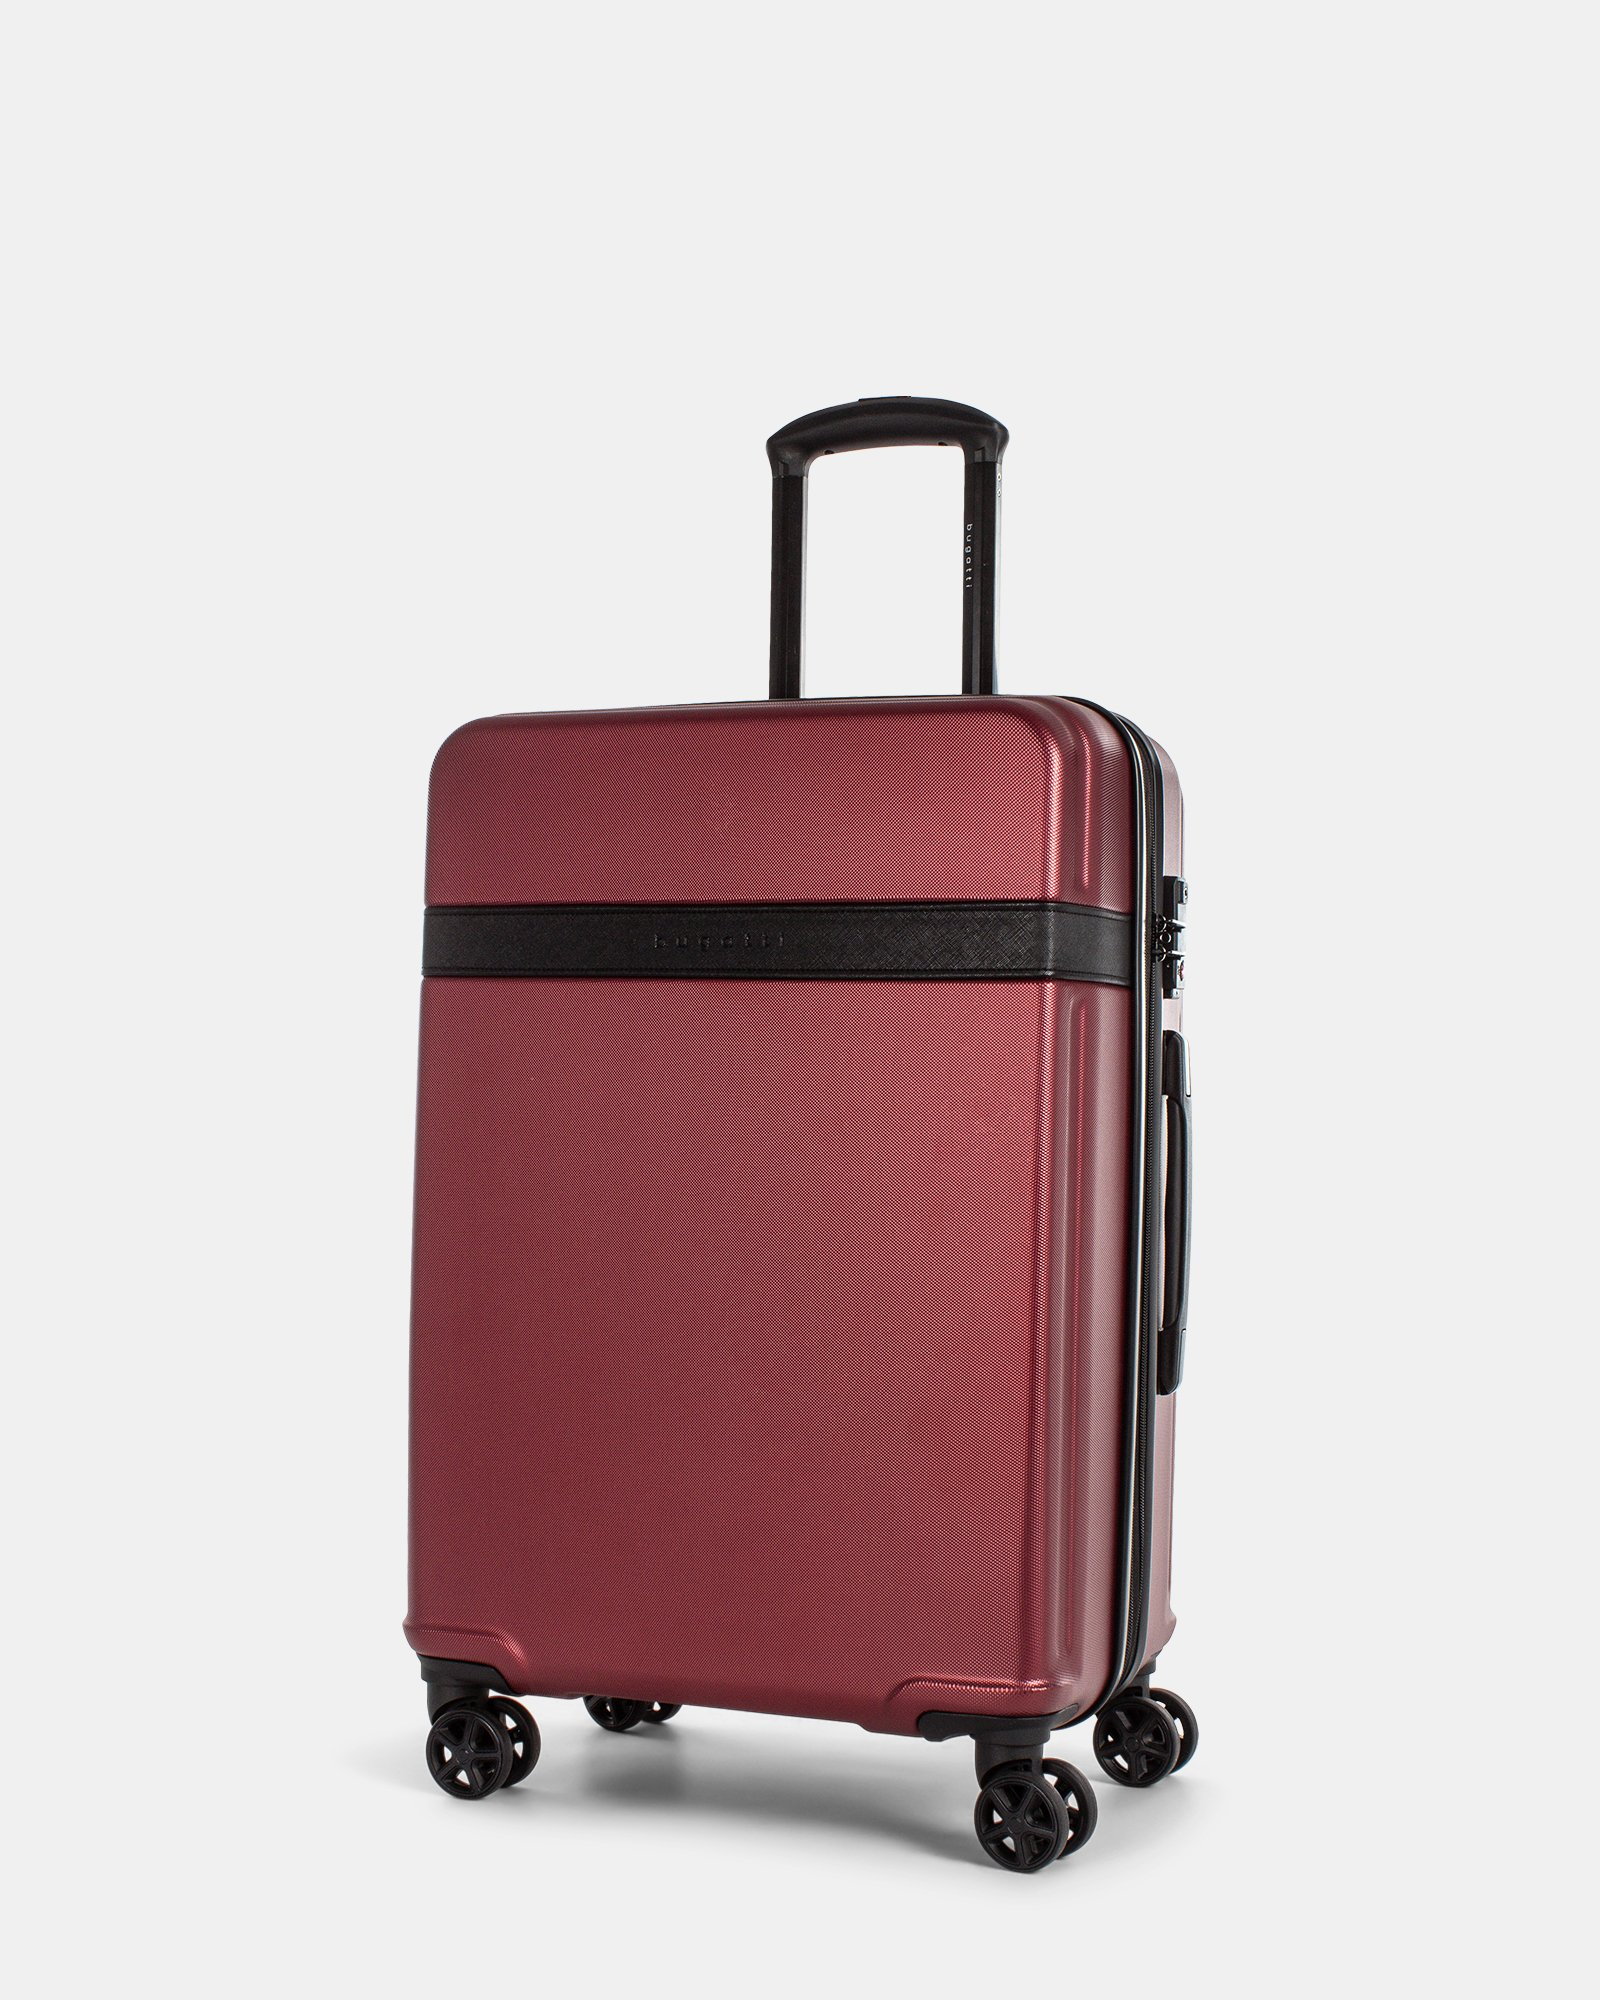 "ROME - HARDSIDE LUGGAGE 24"" - Bugatti - Zoom"